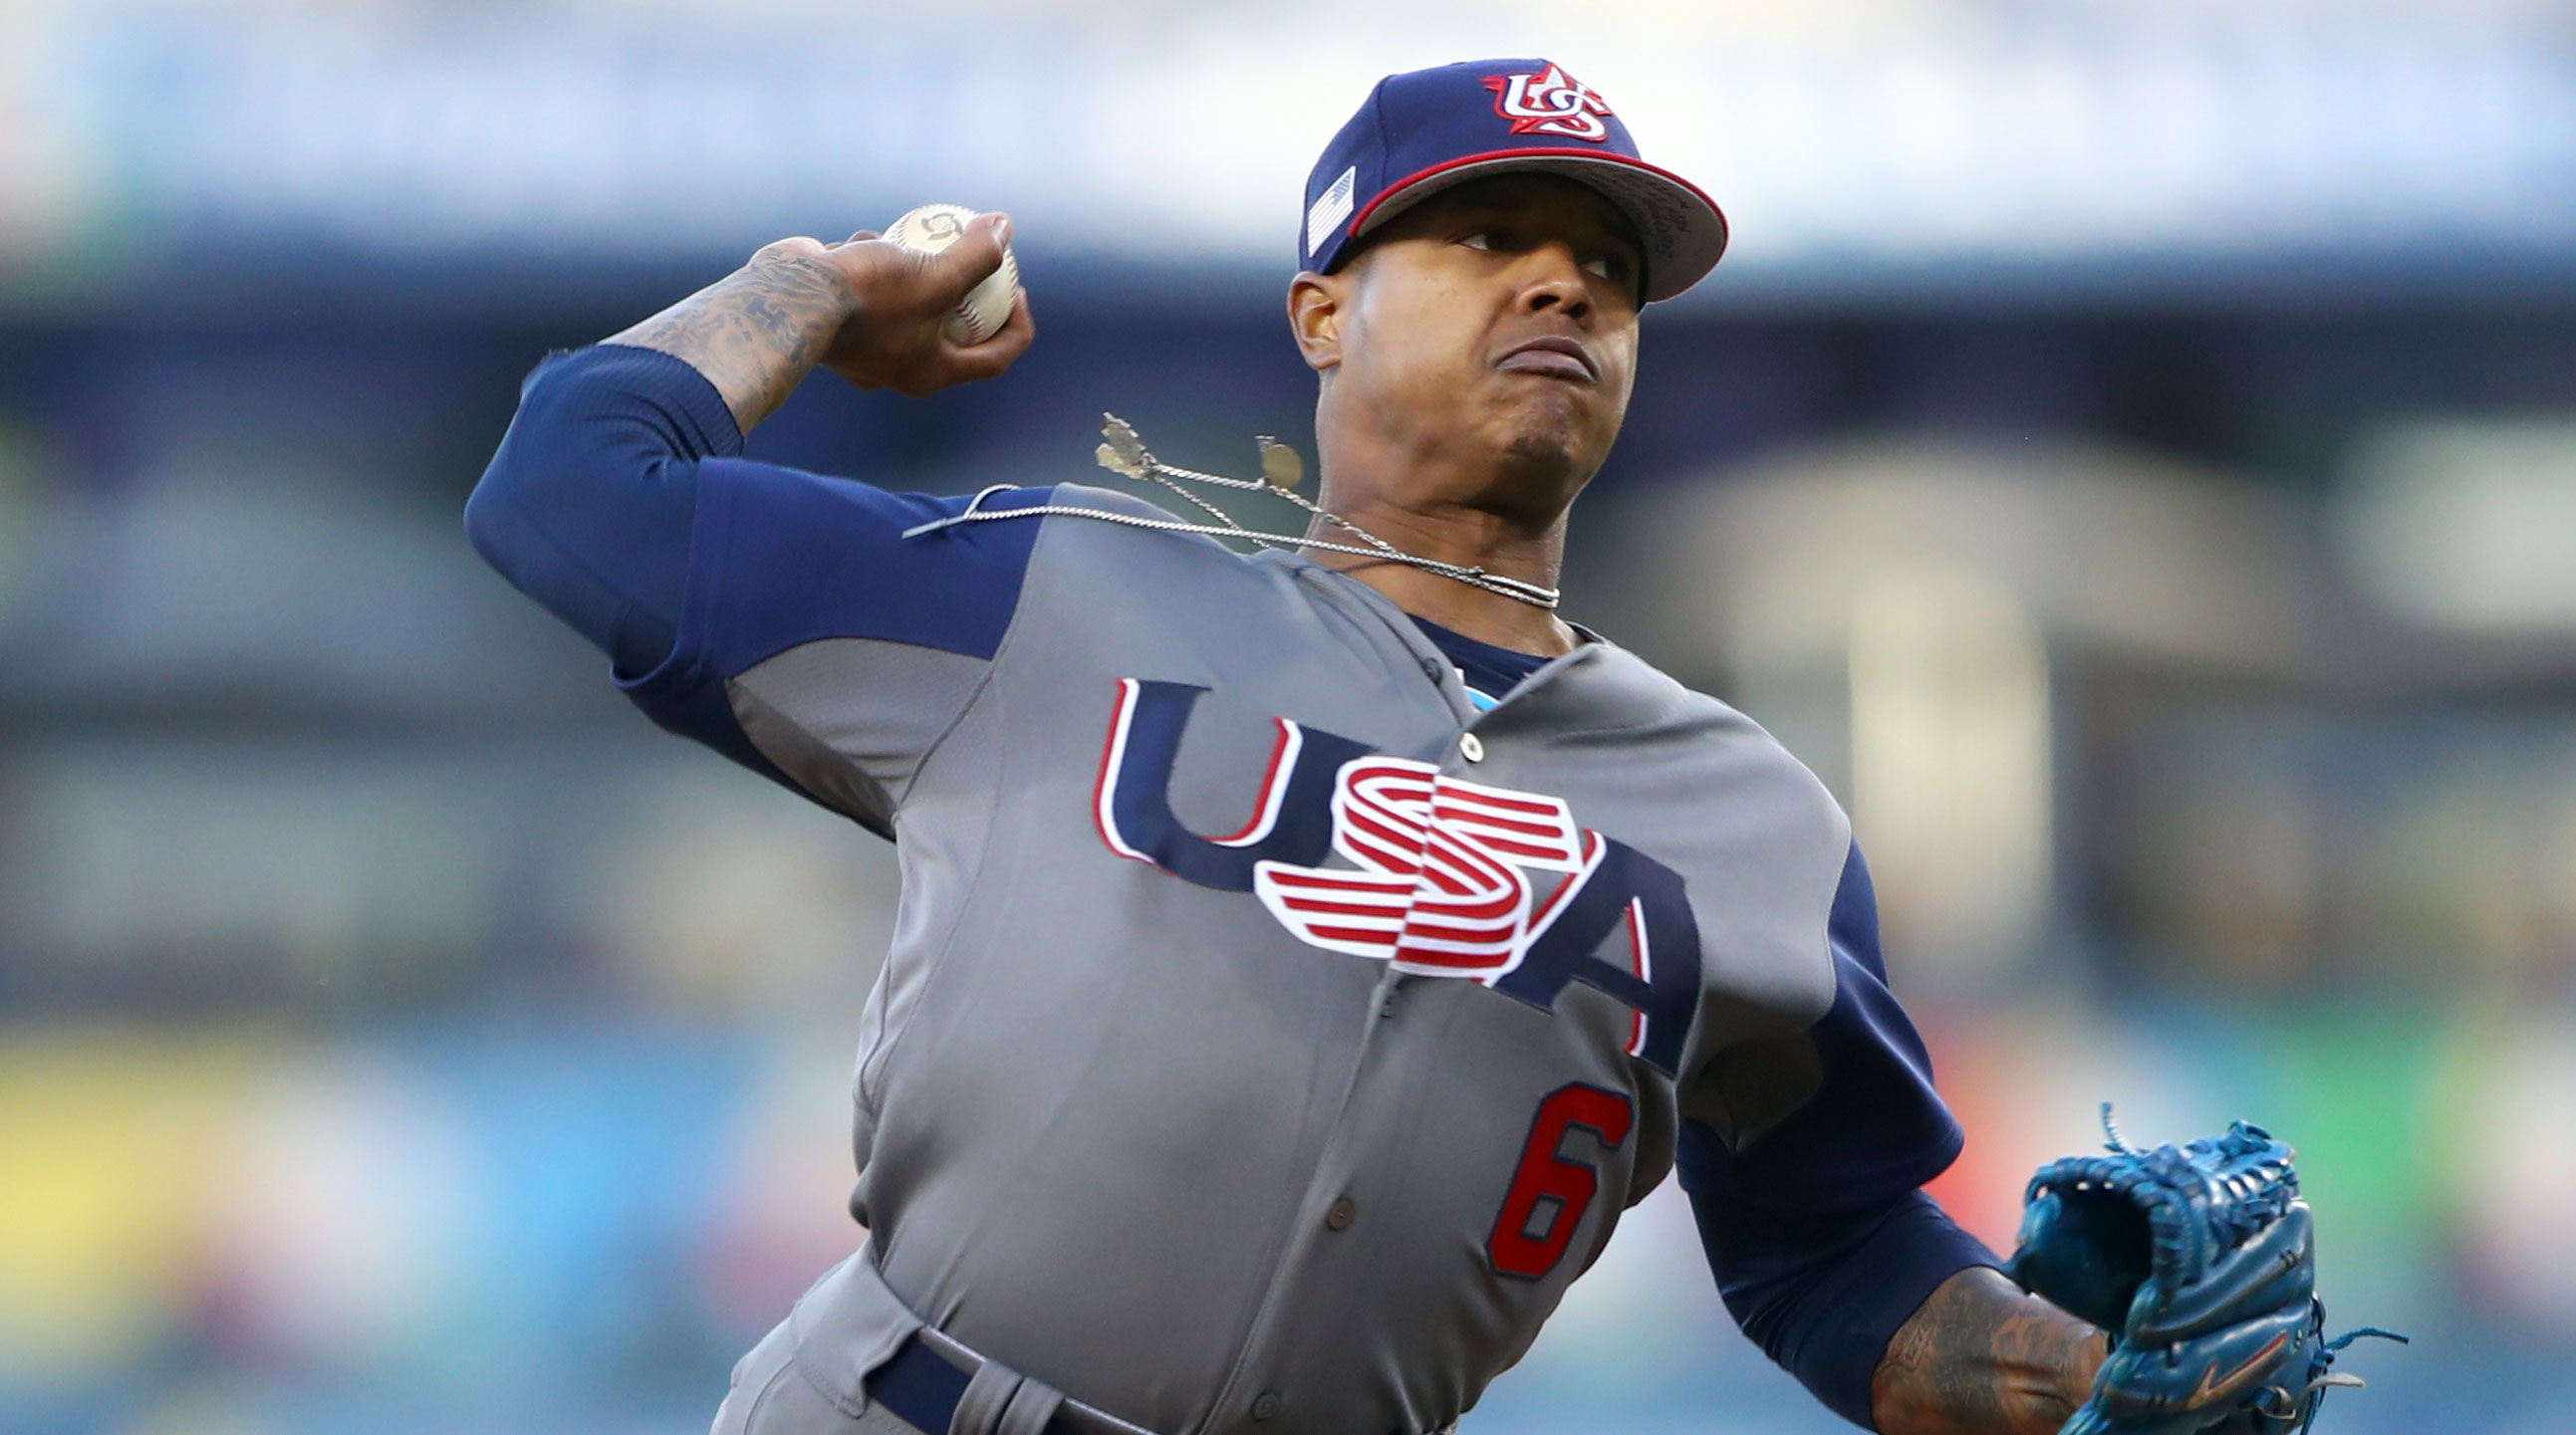 USA's Marcus Stroman throws six no-hit innings in World Baseball Classic final